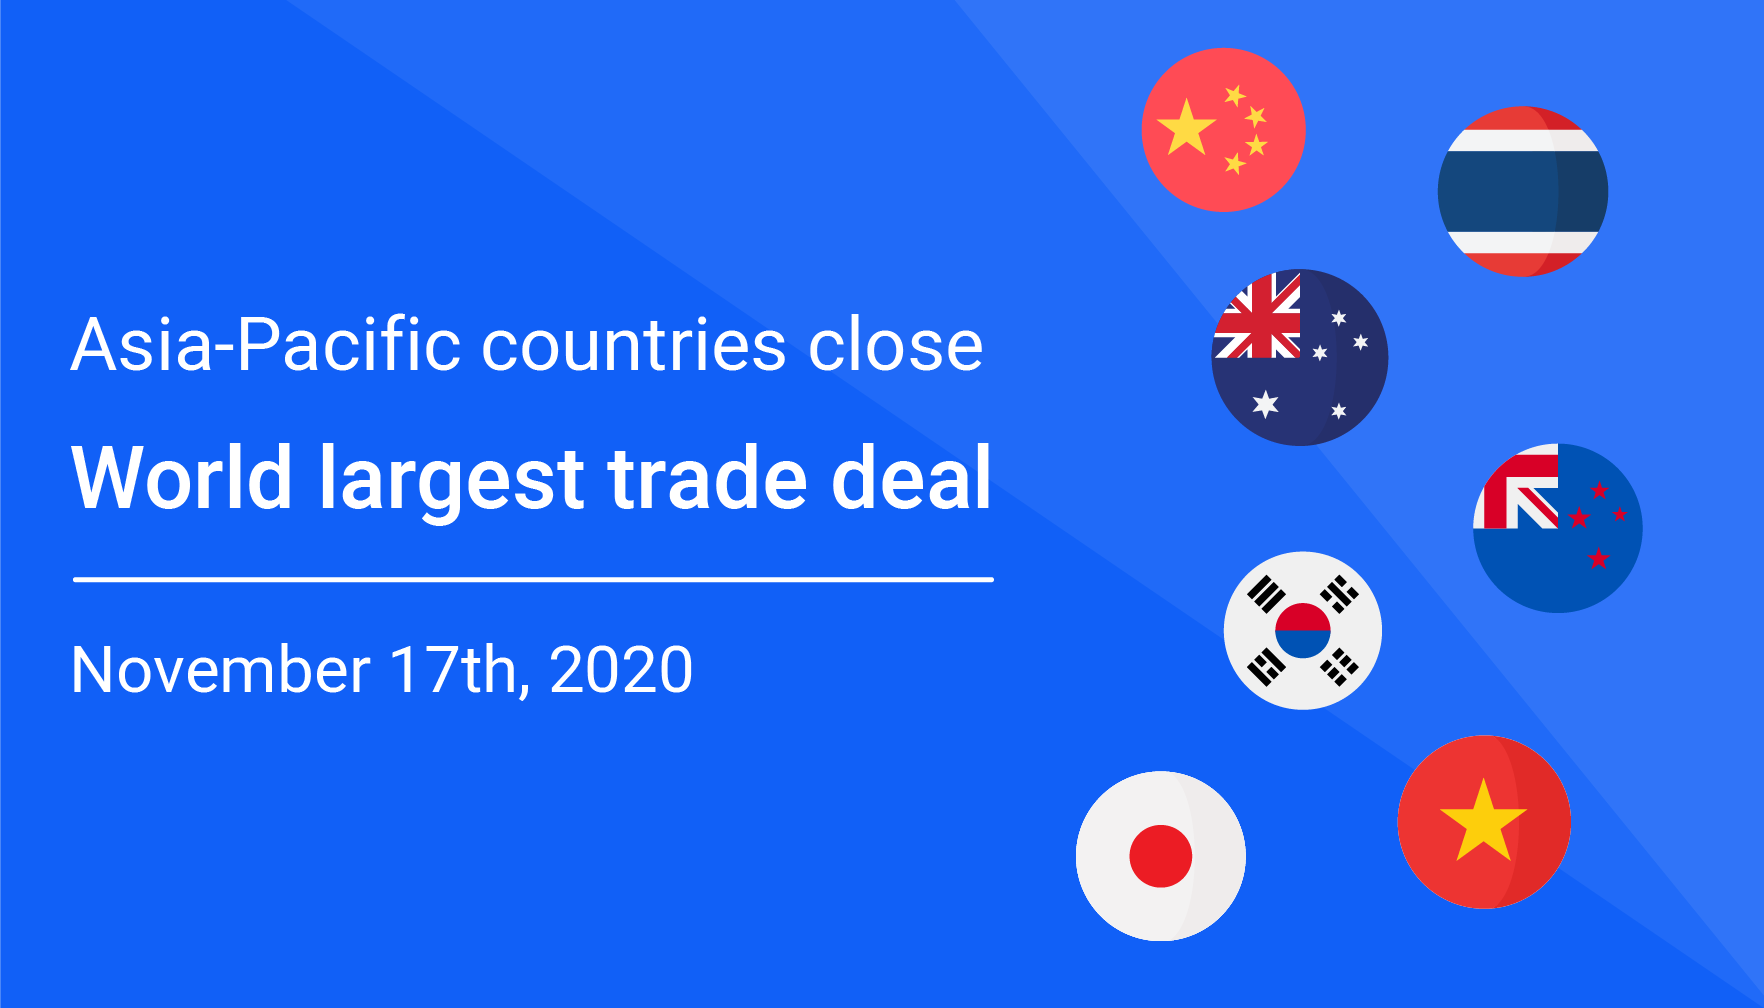 Asia-Pacific countries close world largest trade deal